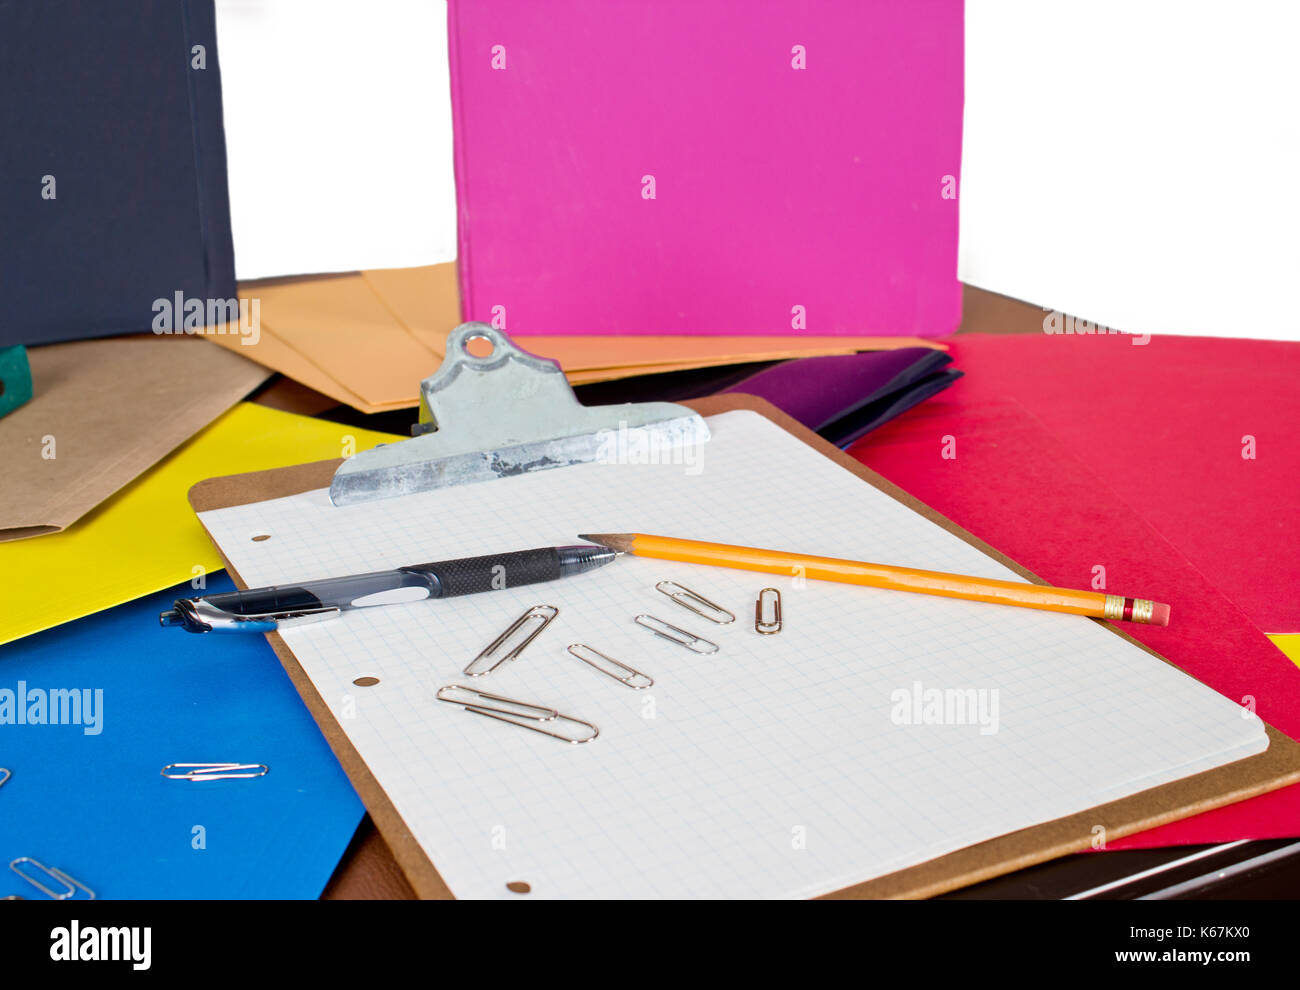 a messy desk space for back to school or office, with clipboard, pens, binders, papers, and paperclips - Stock Image